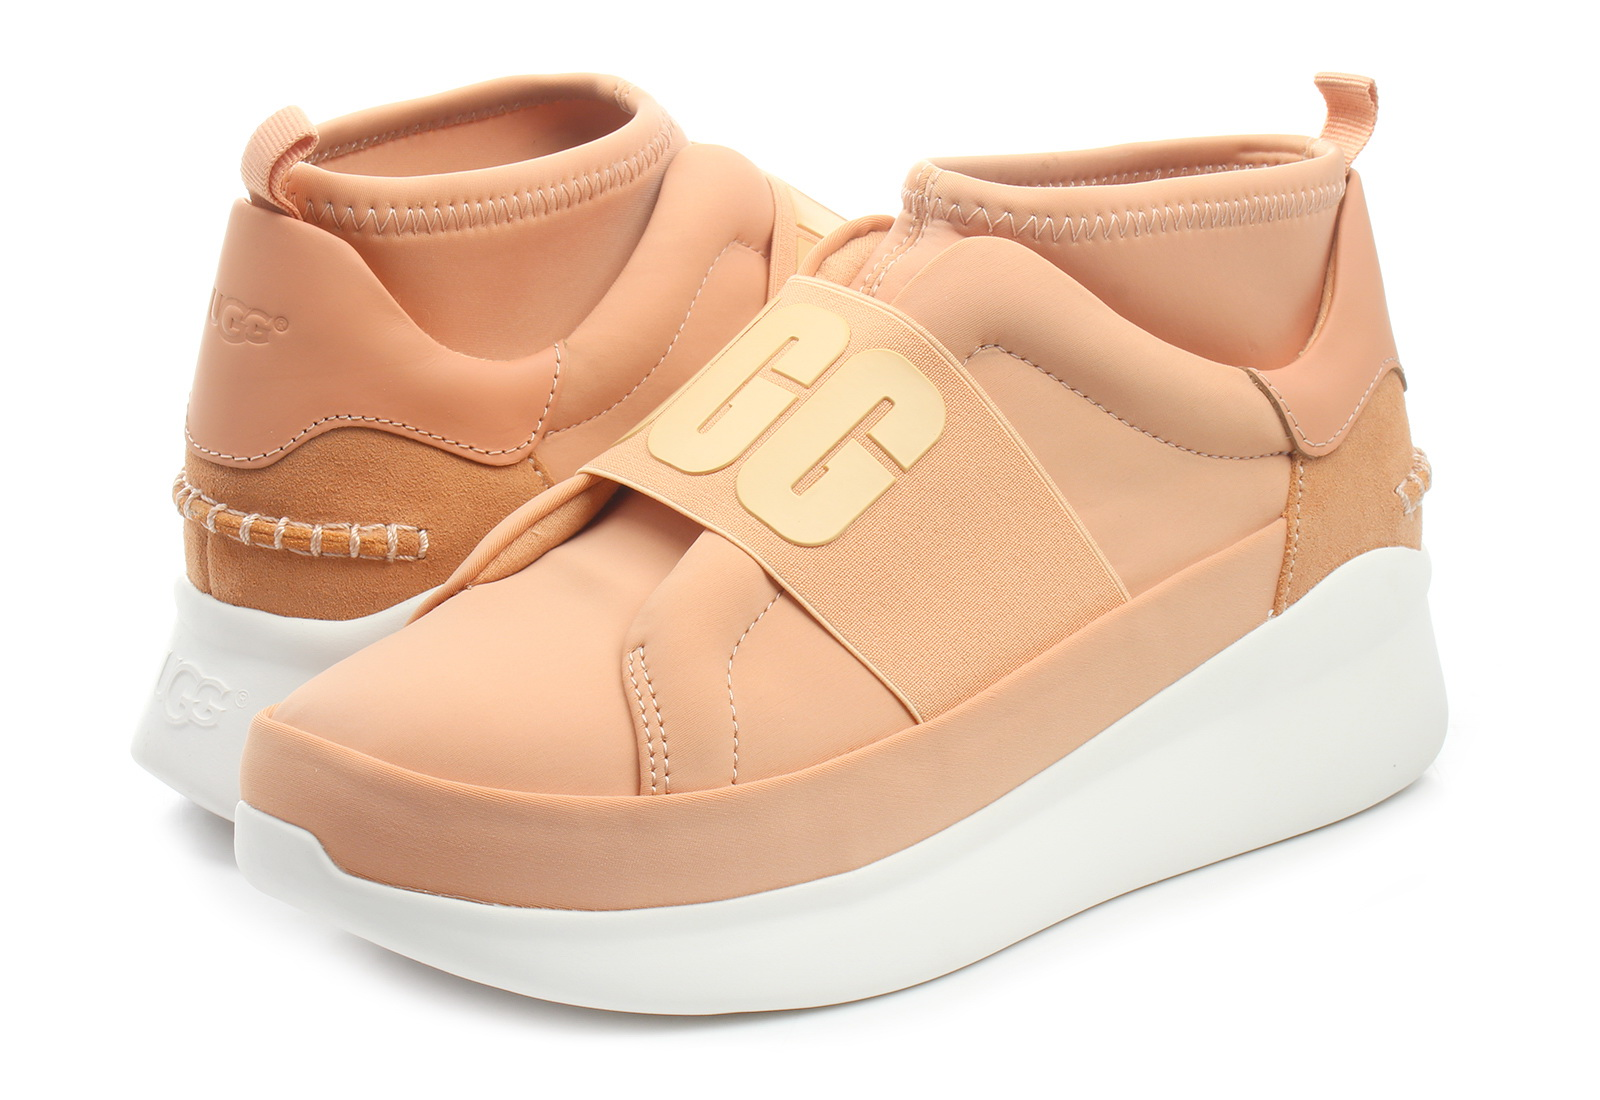 9e200b705bb Ugg Shoes - Neutra Sneaker - 1095097-snt - Online shop for sneakers, shoes  and boots